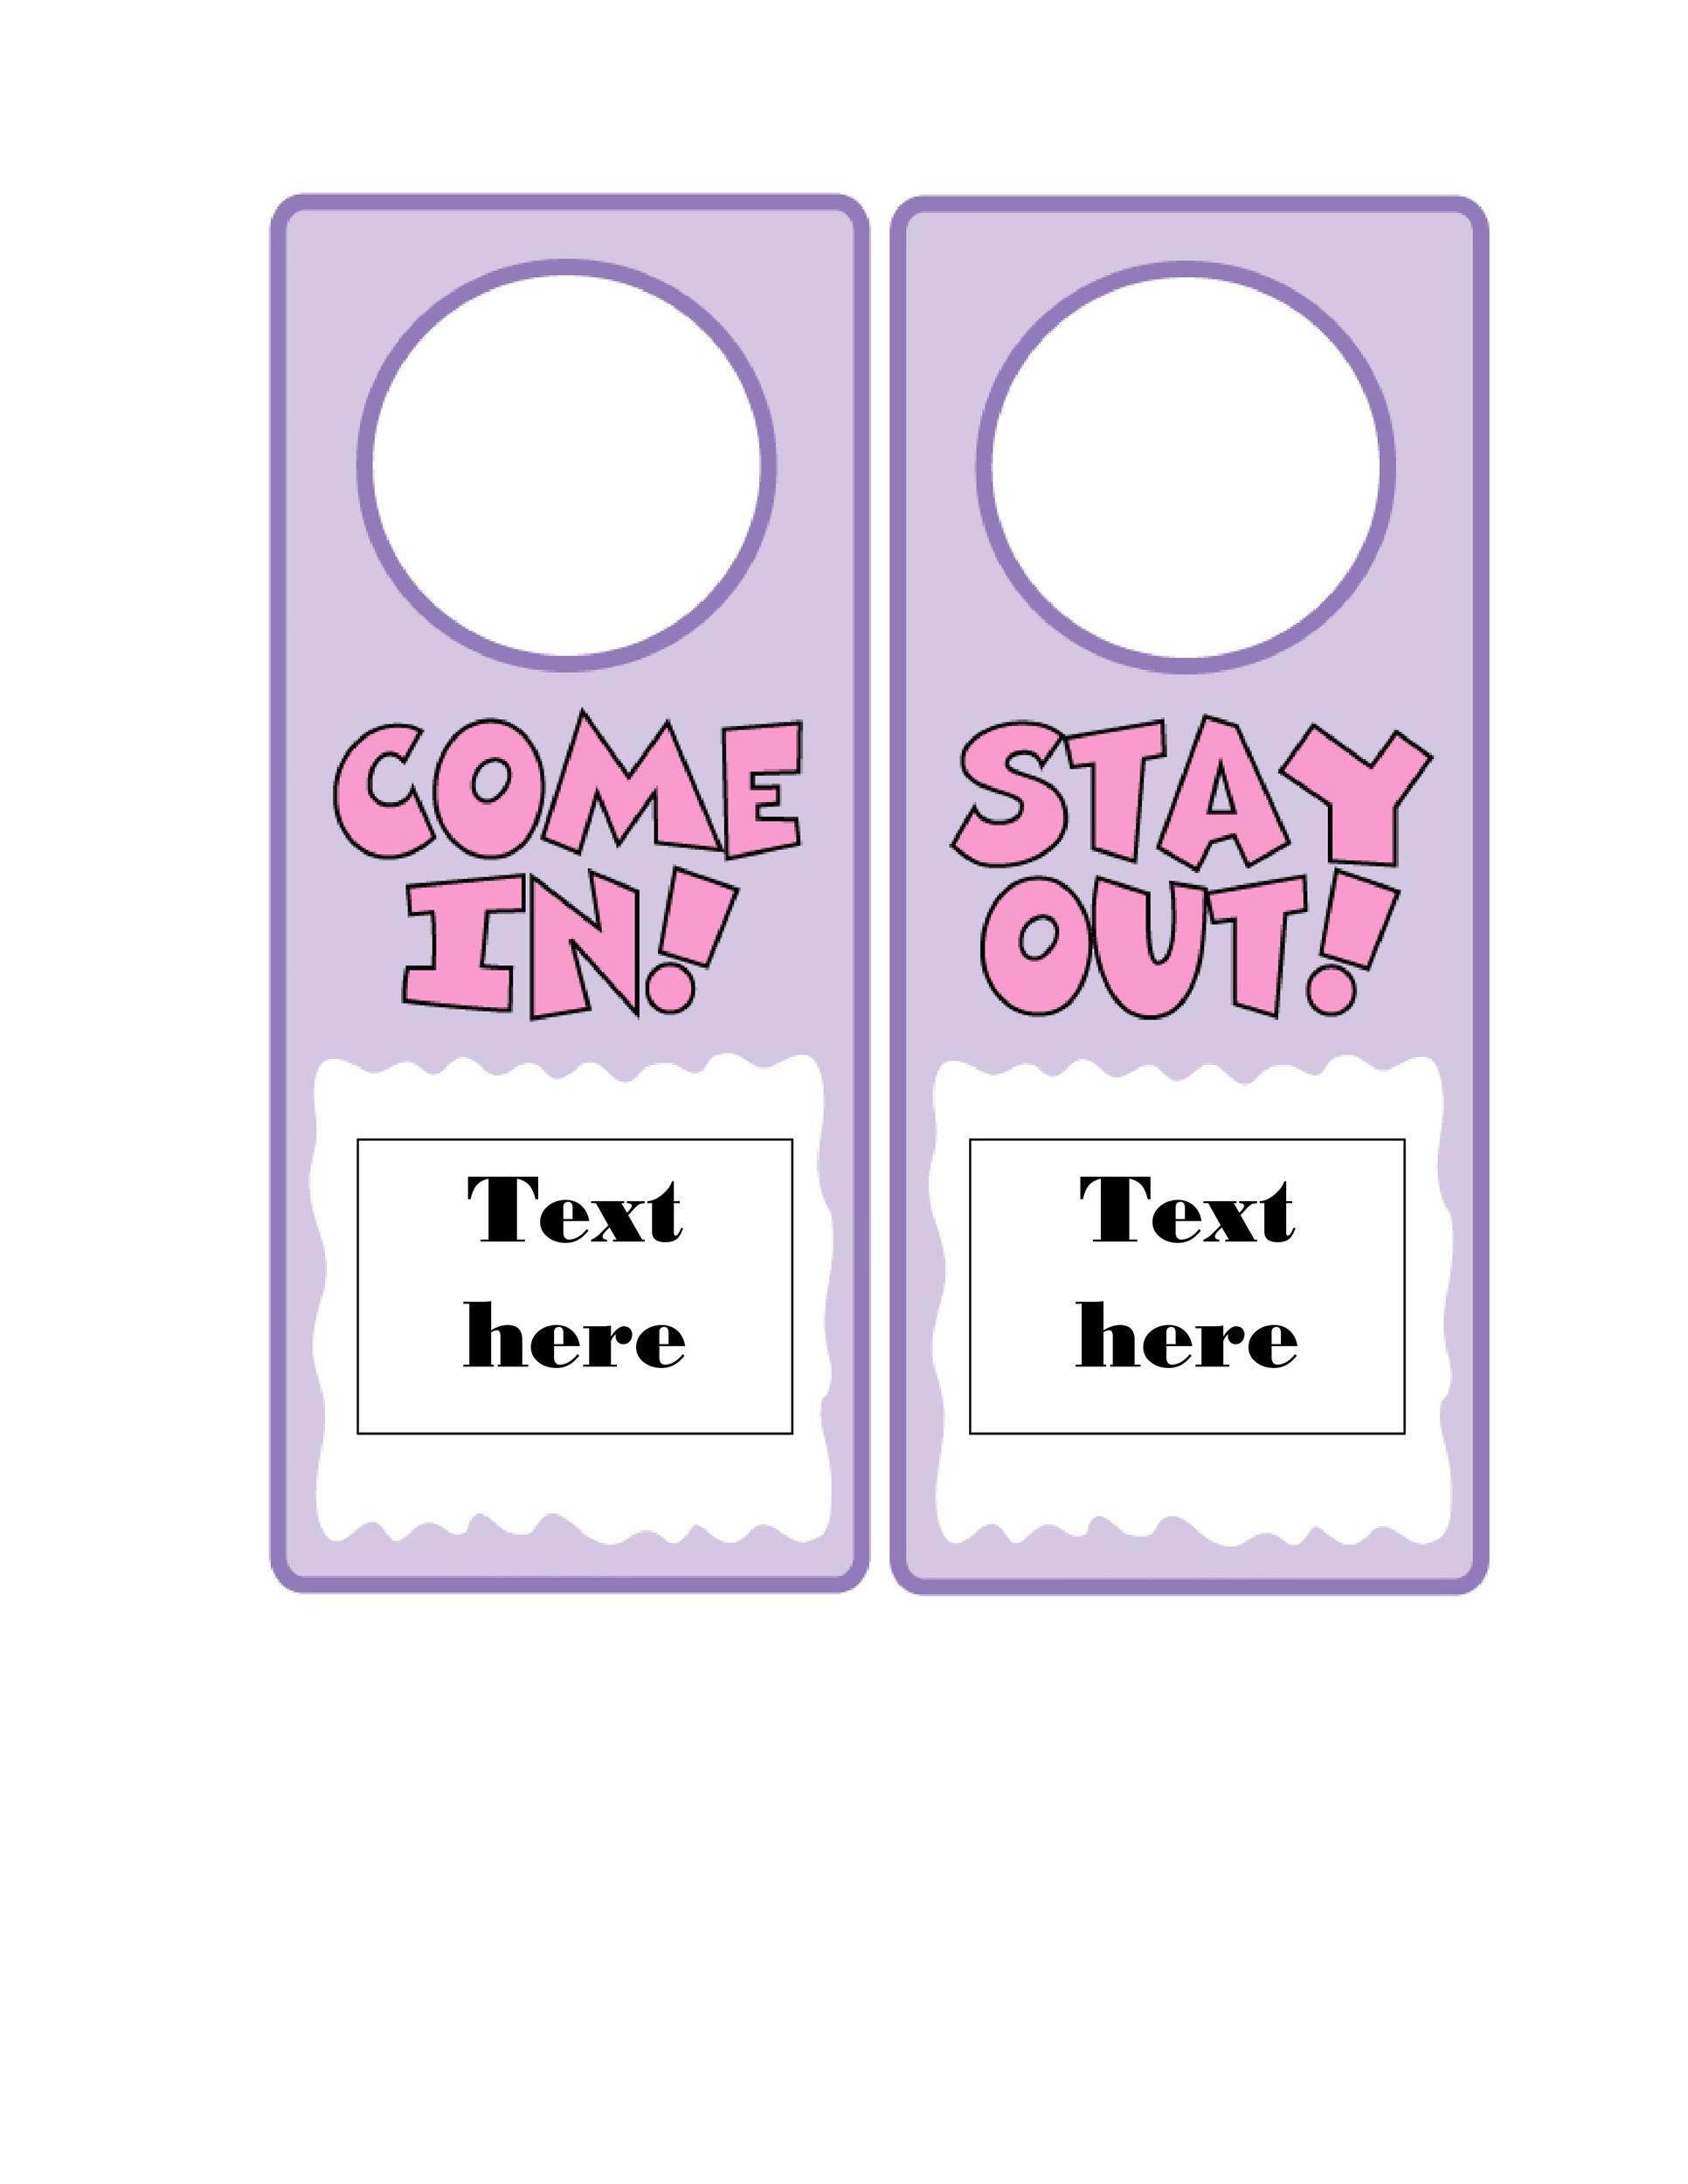 photo regarding Free Printable Door Hanger Template named 43 No cost Doorway Hanger Templates (Term, PDF) ᐅ Template Lab